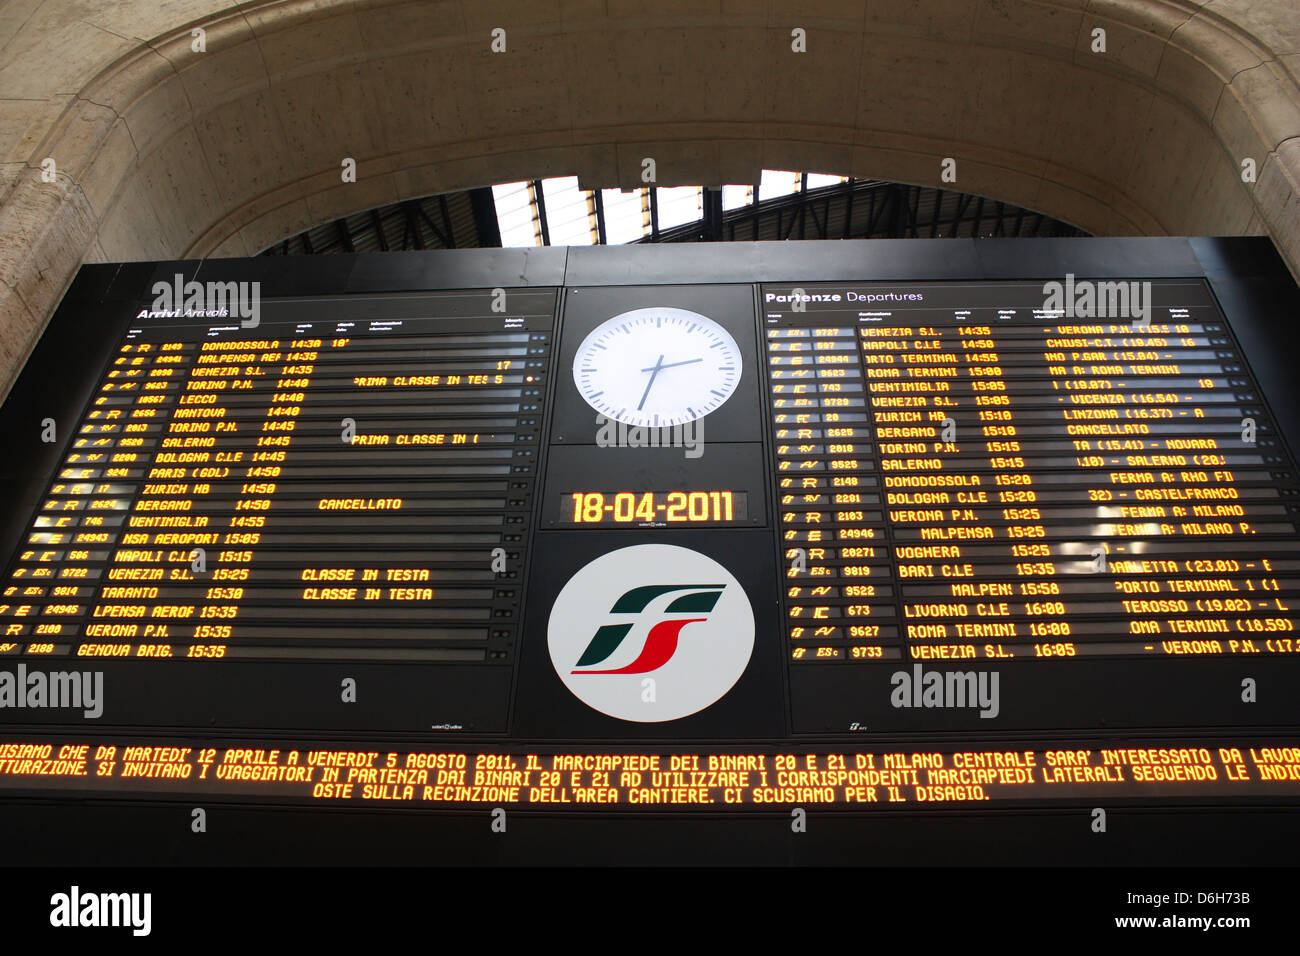 Train timings display board in Milan, Italy railway station Stock Photo